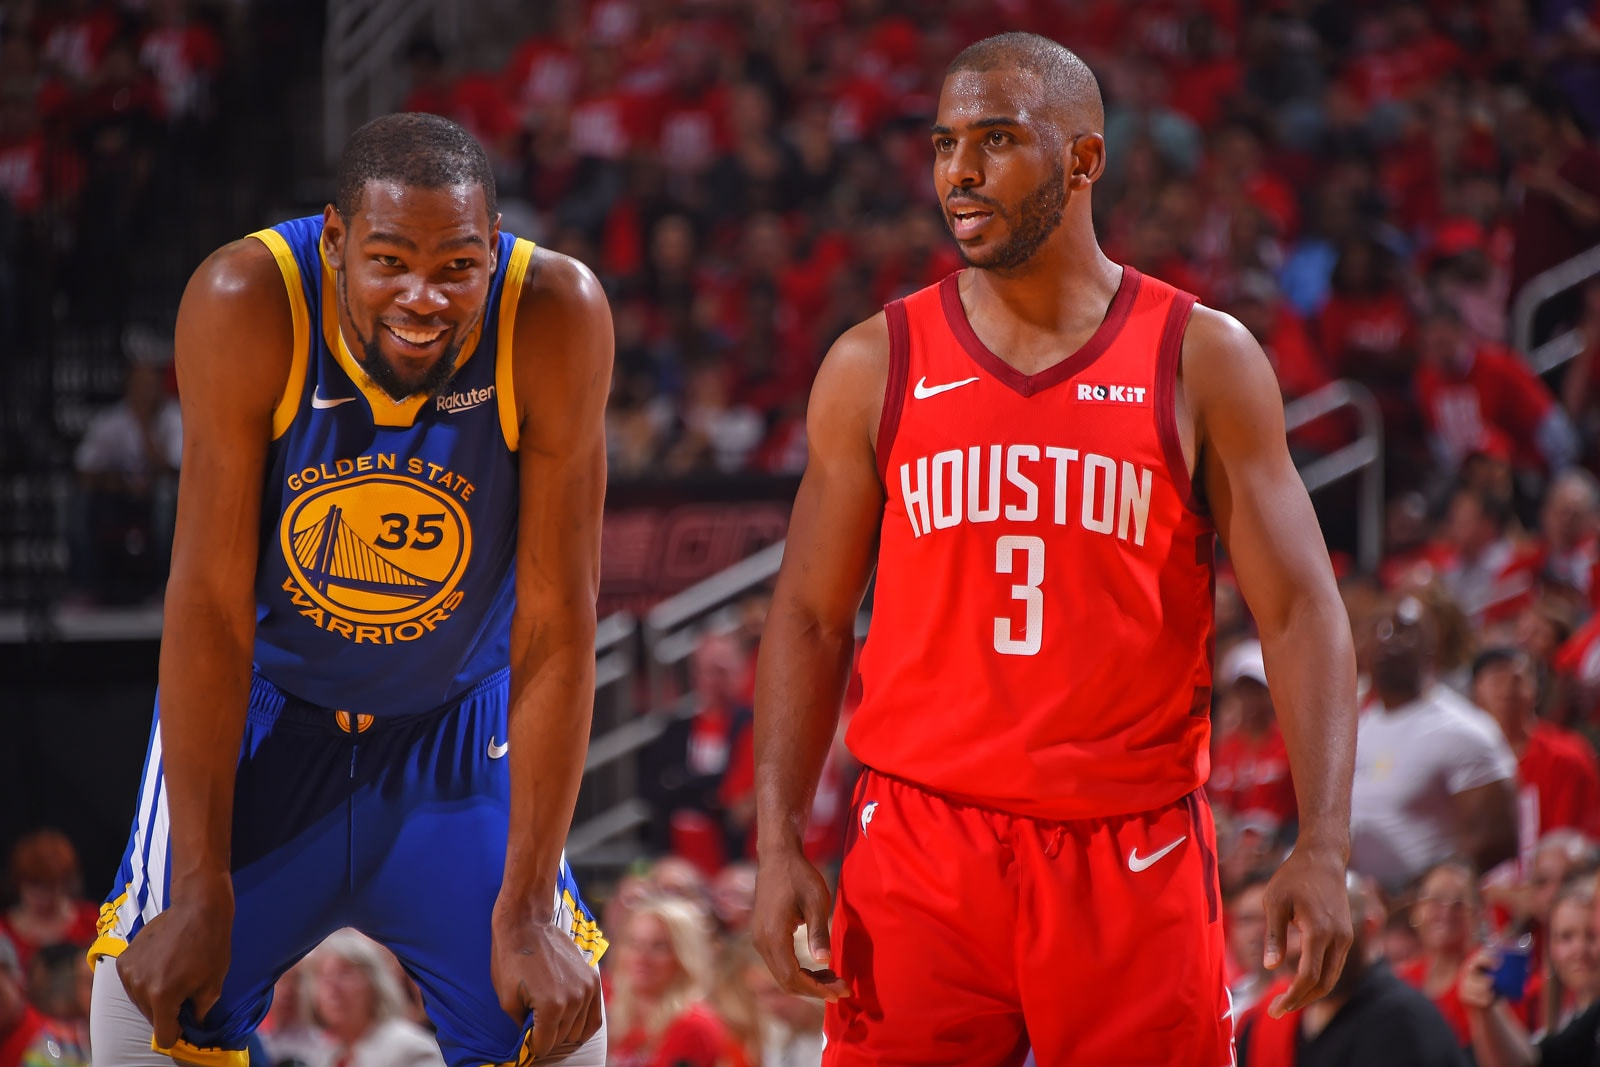 Kevin Durant #35 of the Golden State Warriors and Chris Paul #3 of the Houston Rockets smile during Game Four of the Western Conference Semifinals of the 2019 NBA Playoffs on May 6, 2019 at the Toyota Center in Houston, Texas.